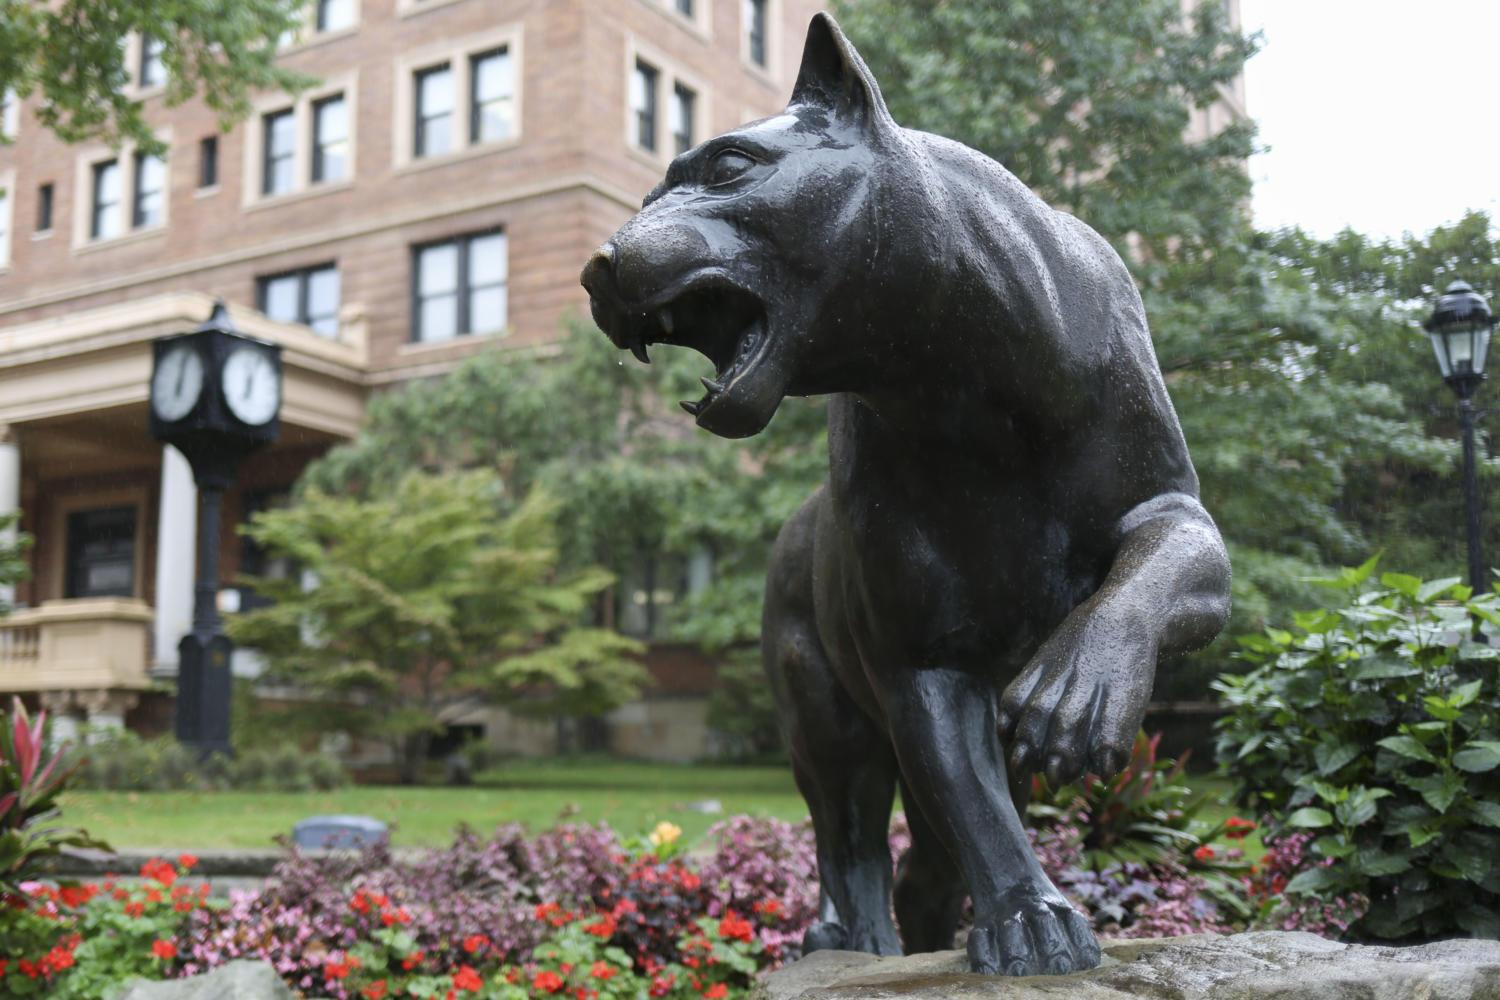 Sculpted in Parma, Italy by Miriani Guido, the panther statue was placed outside the WPU in 2001.(Photo by Thomas Yang | Senior Staff Photographer)